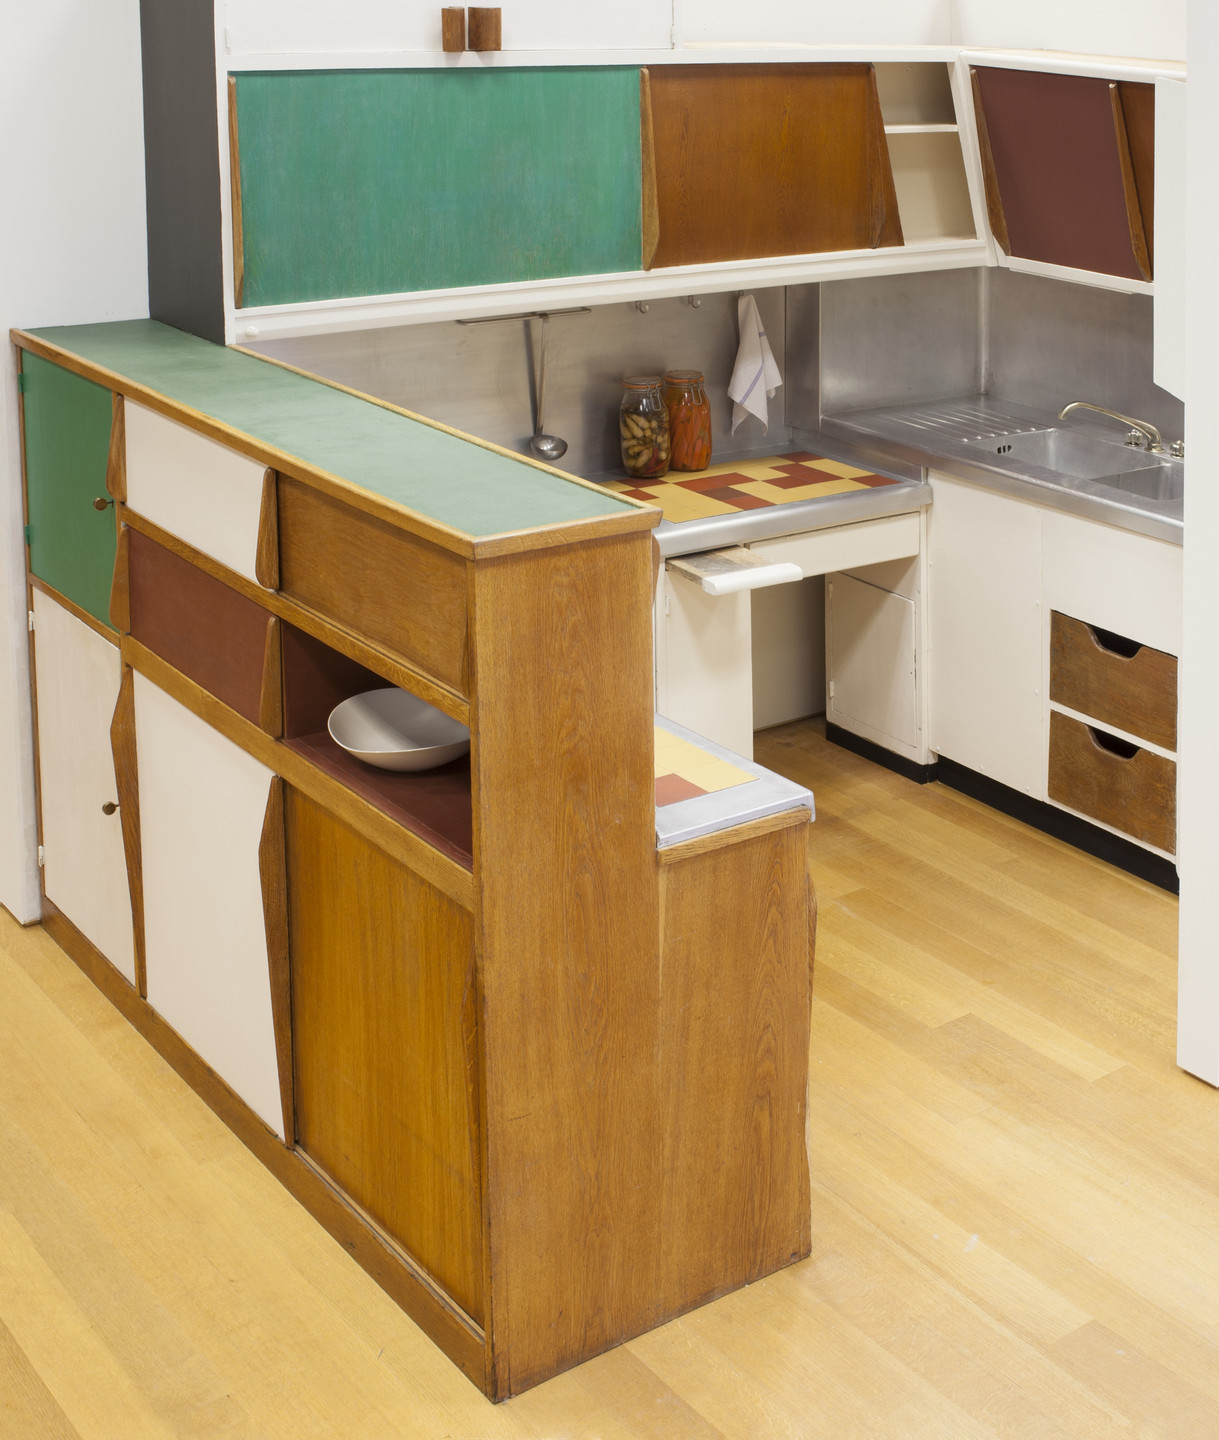 Charlotte Perriand, Le Corbusier (Charles-Édouard Jeanneret), ATBAT. Kitchen from the Unité d'Habitation, Marseille, France. c.1952